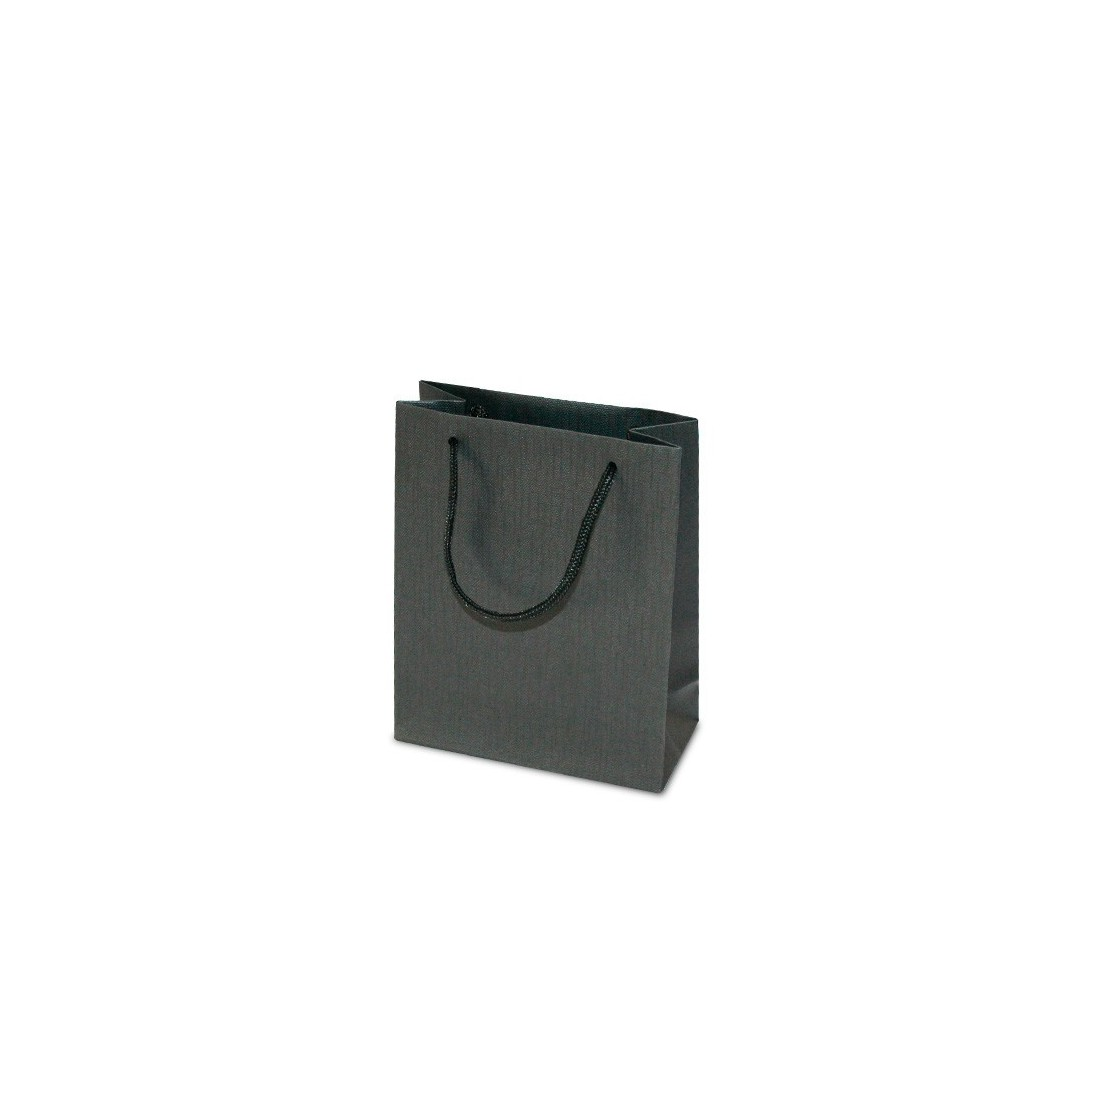 Millenium Bag, Medium